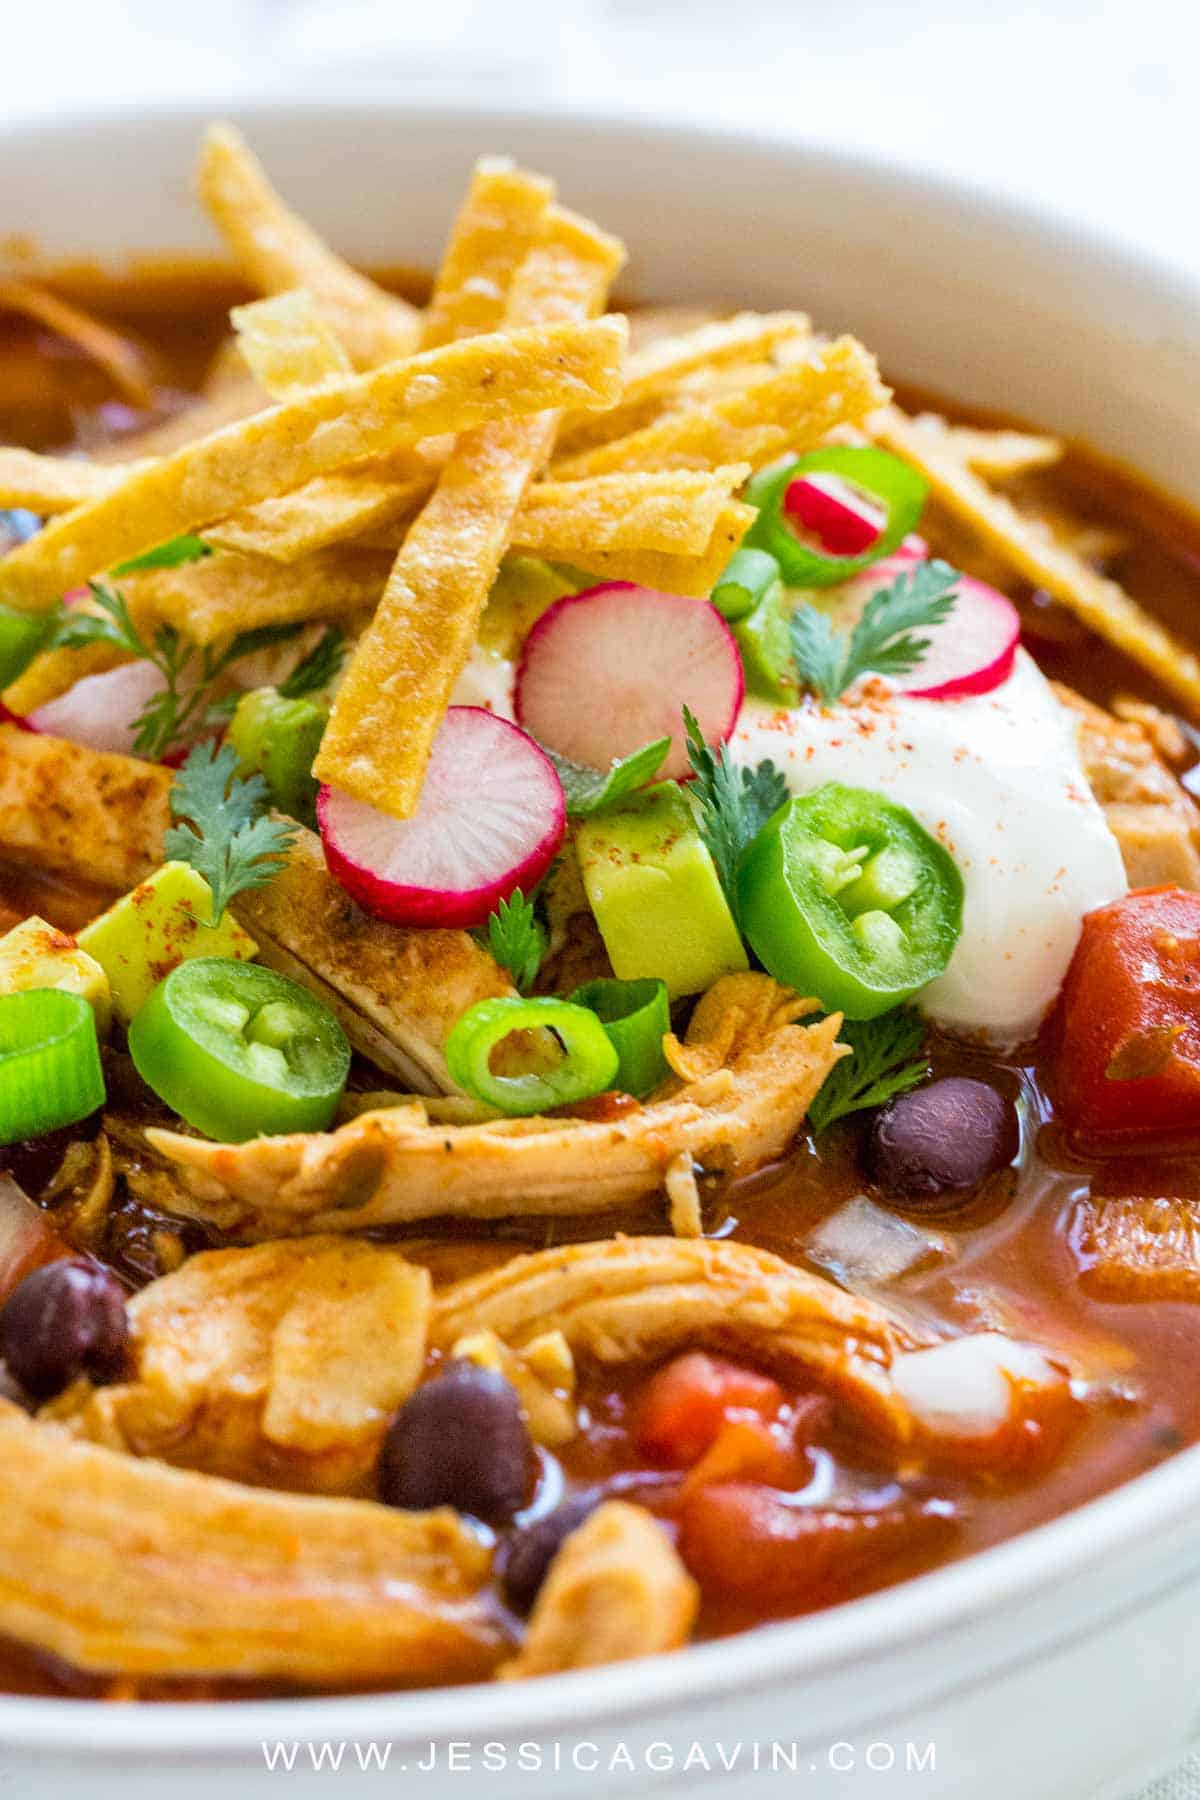 Chicken tortilla soup on the stove top in just 30 minutes! Shredded white meat, bold seasonings, spicy chilis, fire roasted tomatoes, and corn tortillas. #mexican #tortillasoup #soup #chickensoup